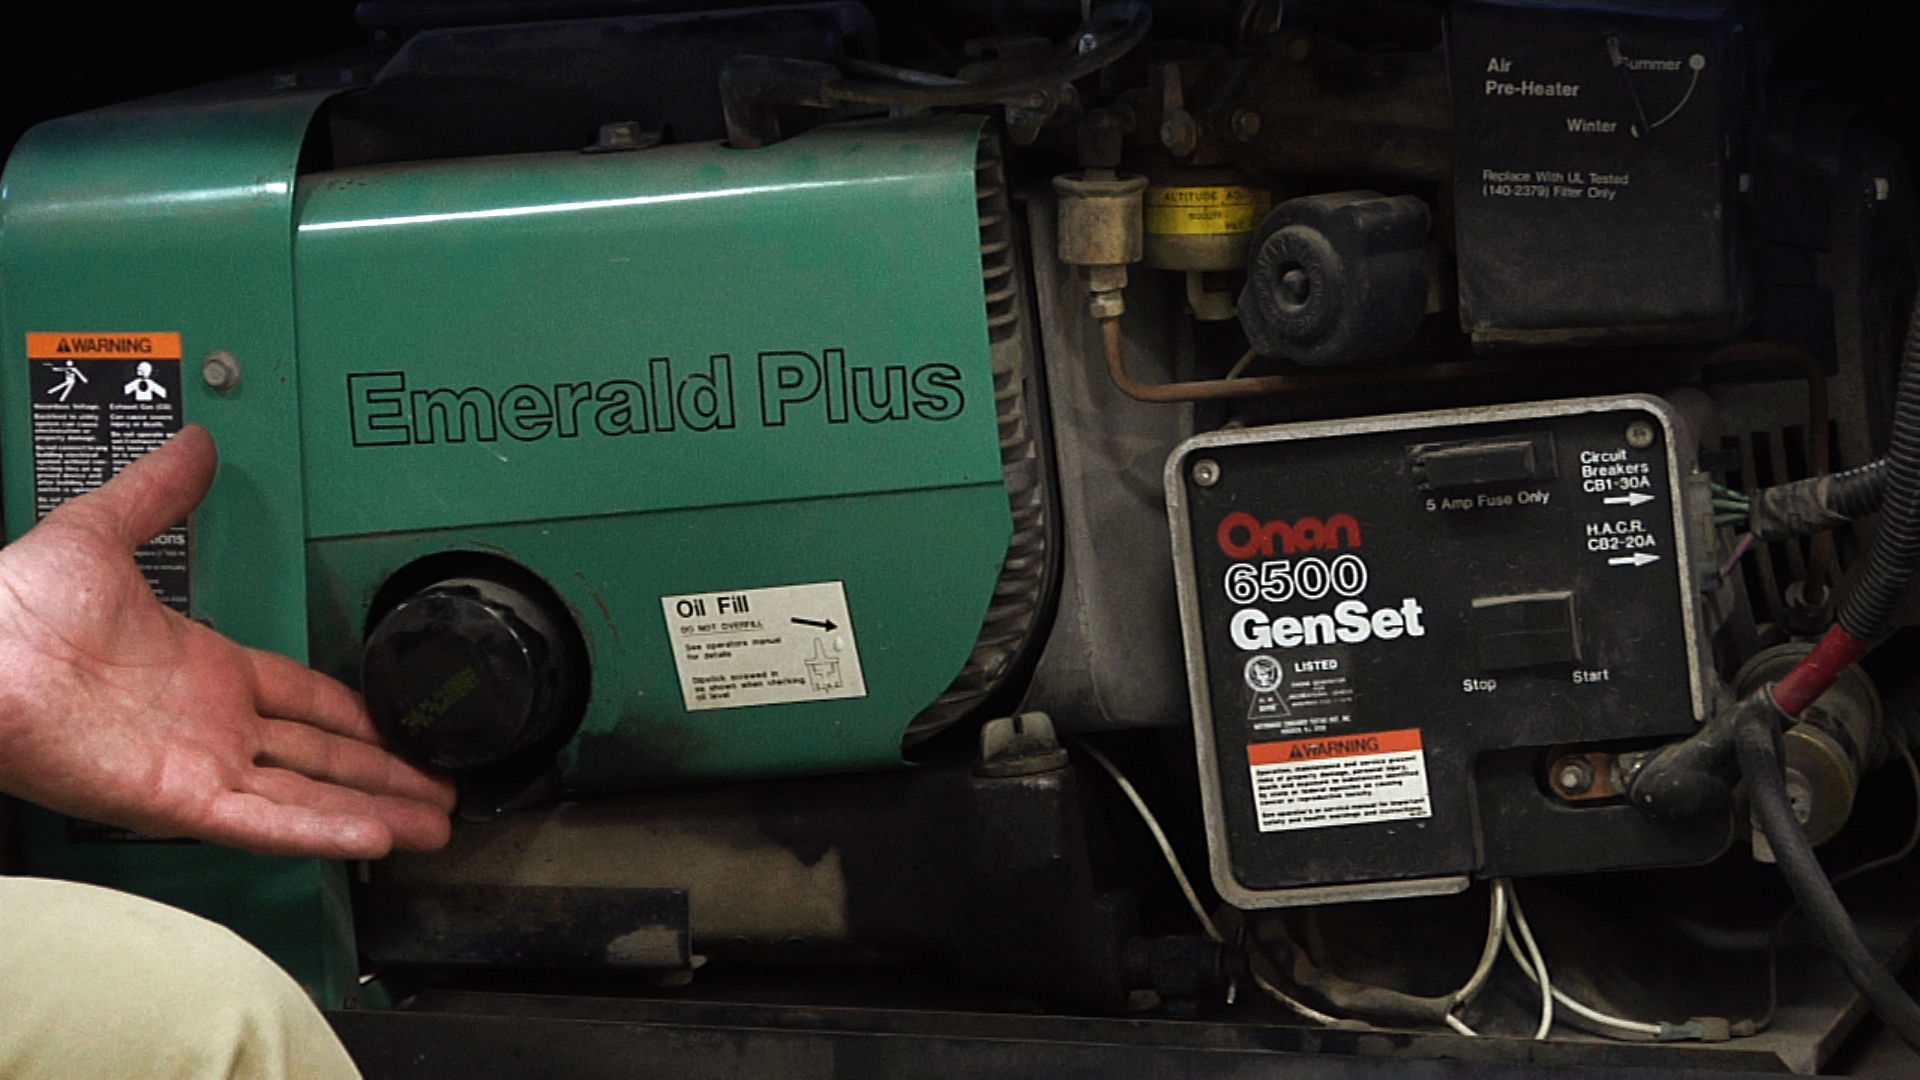 Basic RV Generator Maintenance: What to Review Annually